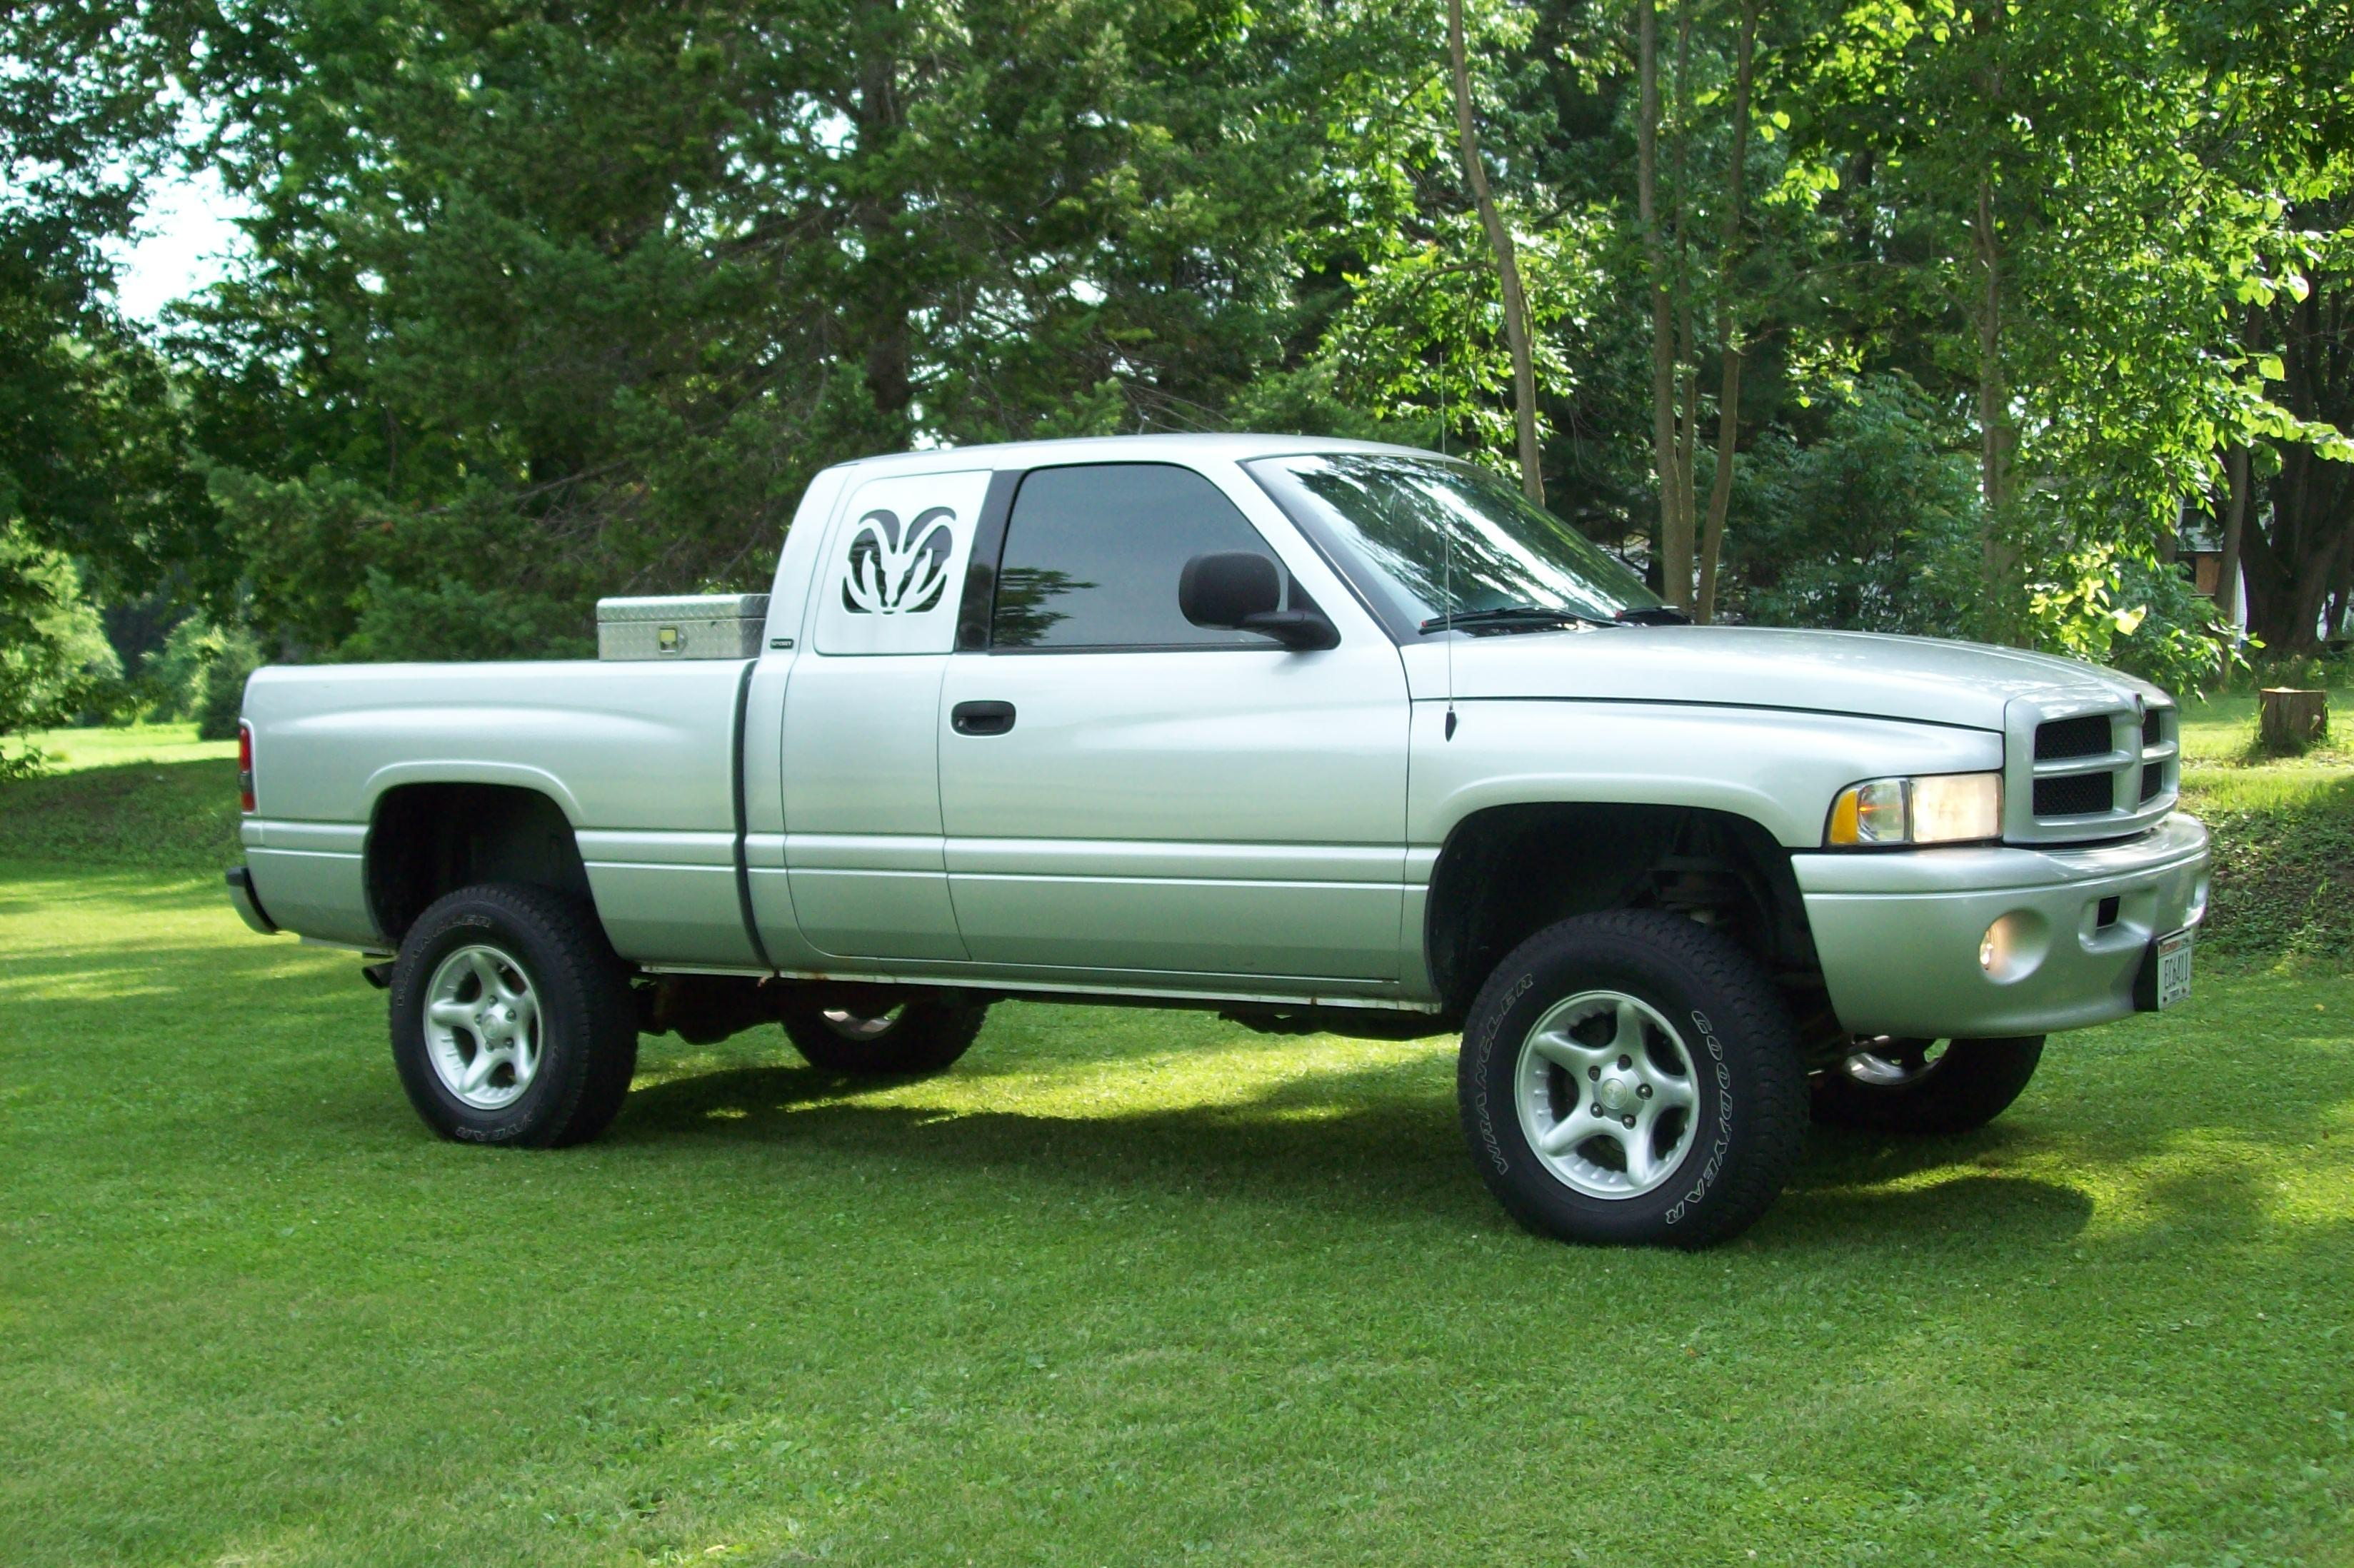 small resolution of 84coltgtsturbo 2001 dodge ram 1500 quad cab